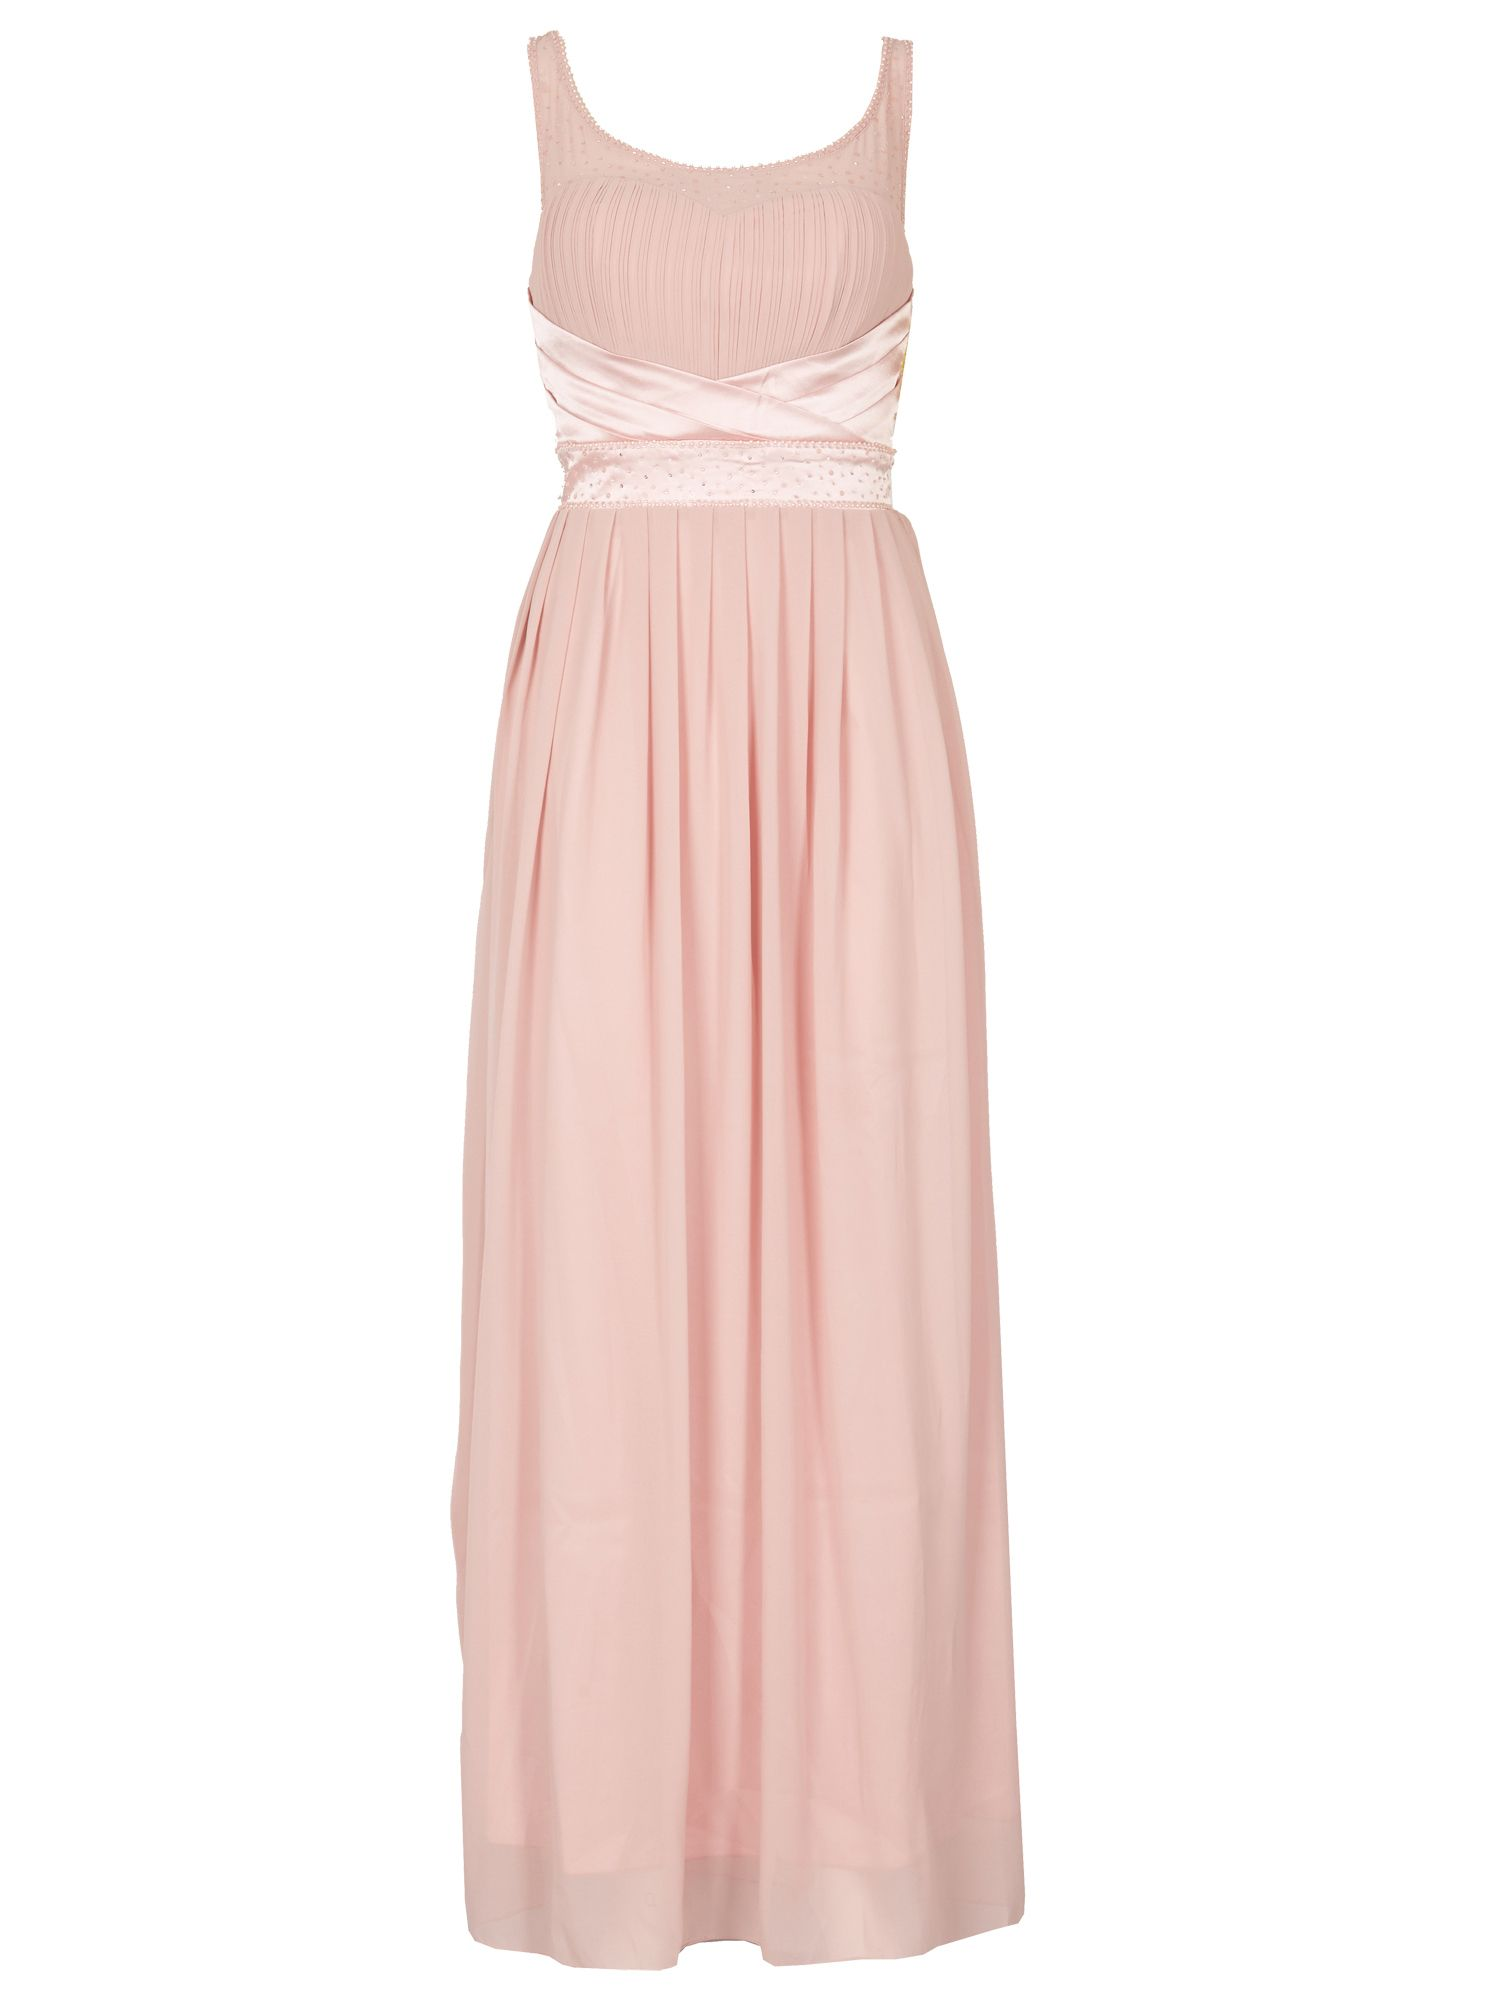 Izabel London Embellished Maxi Dress, Pink